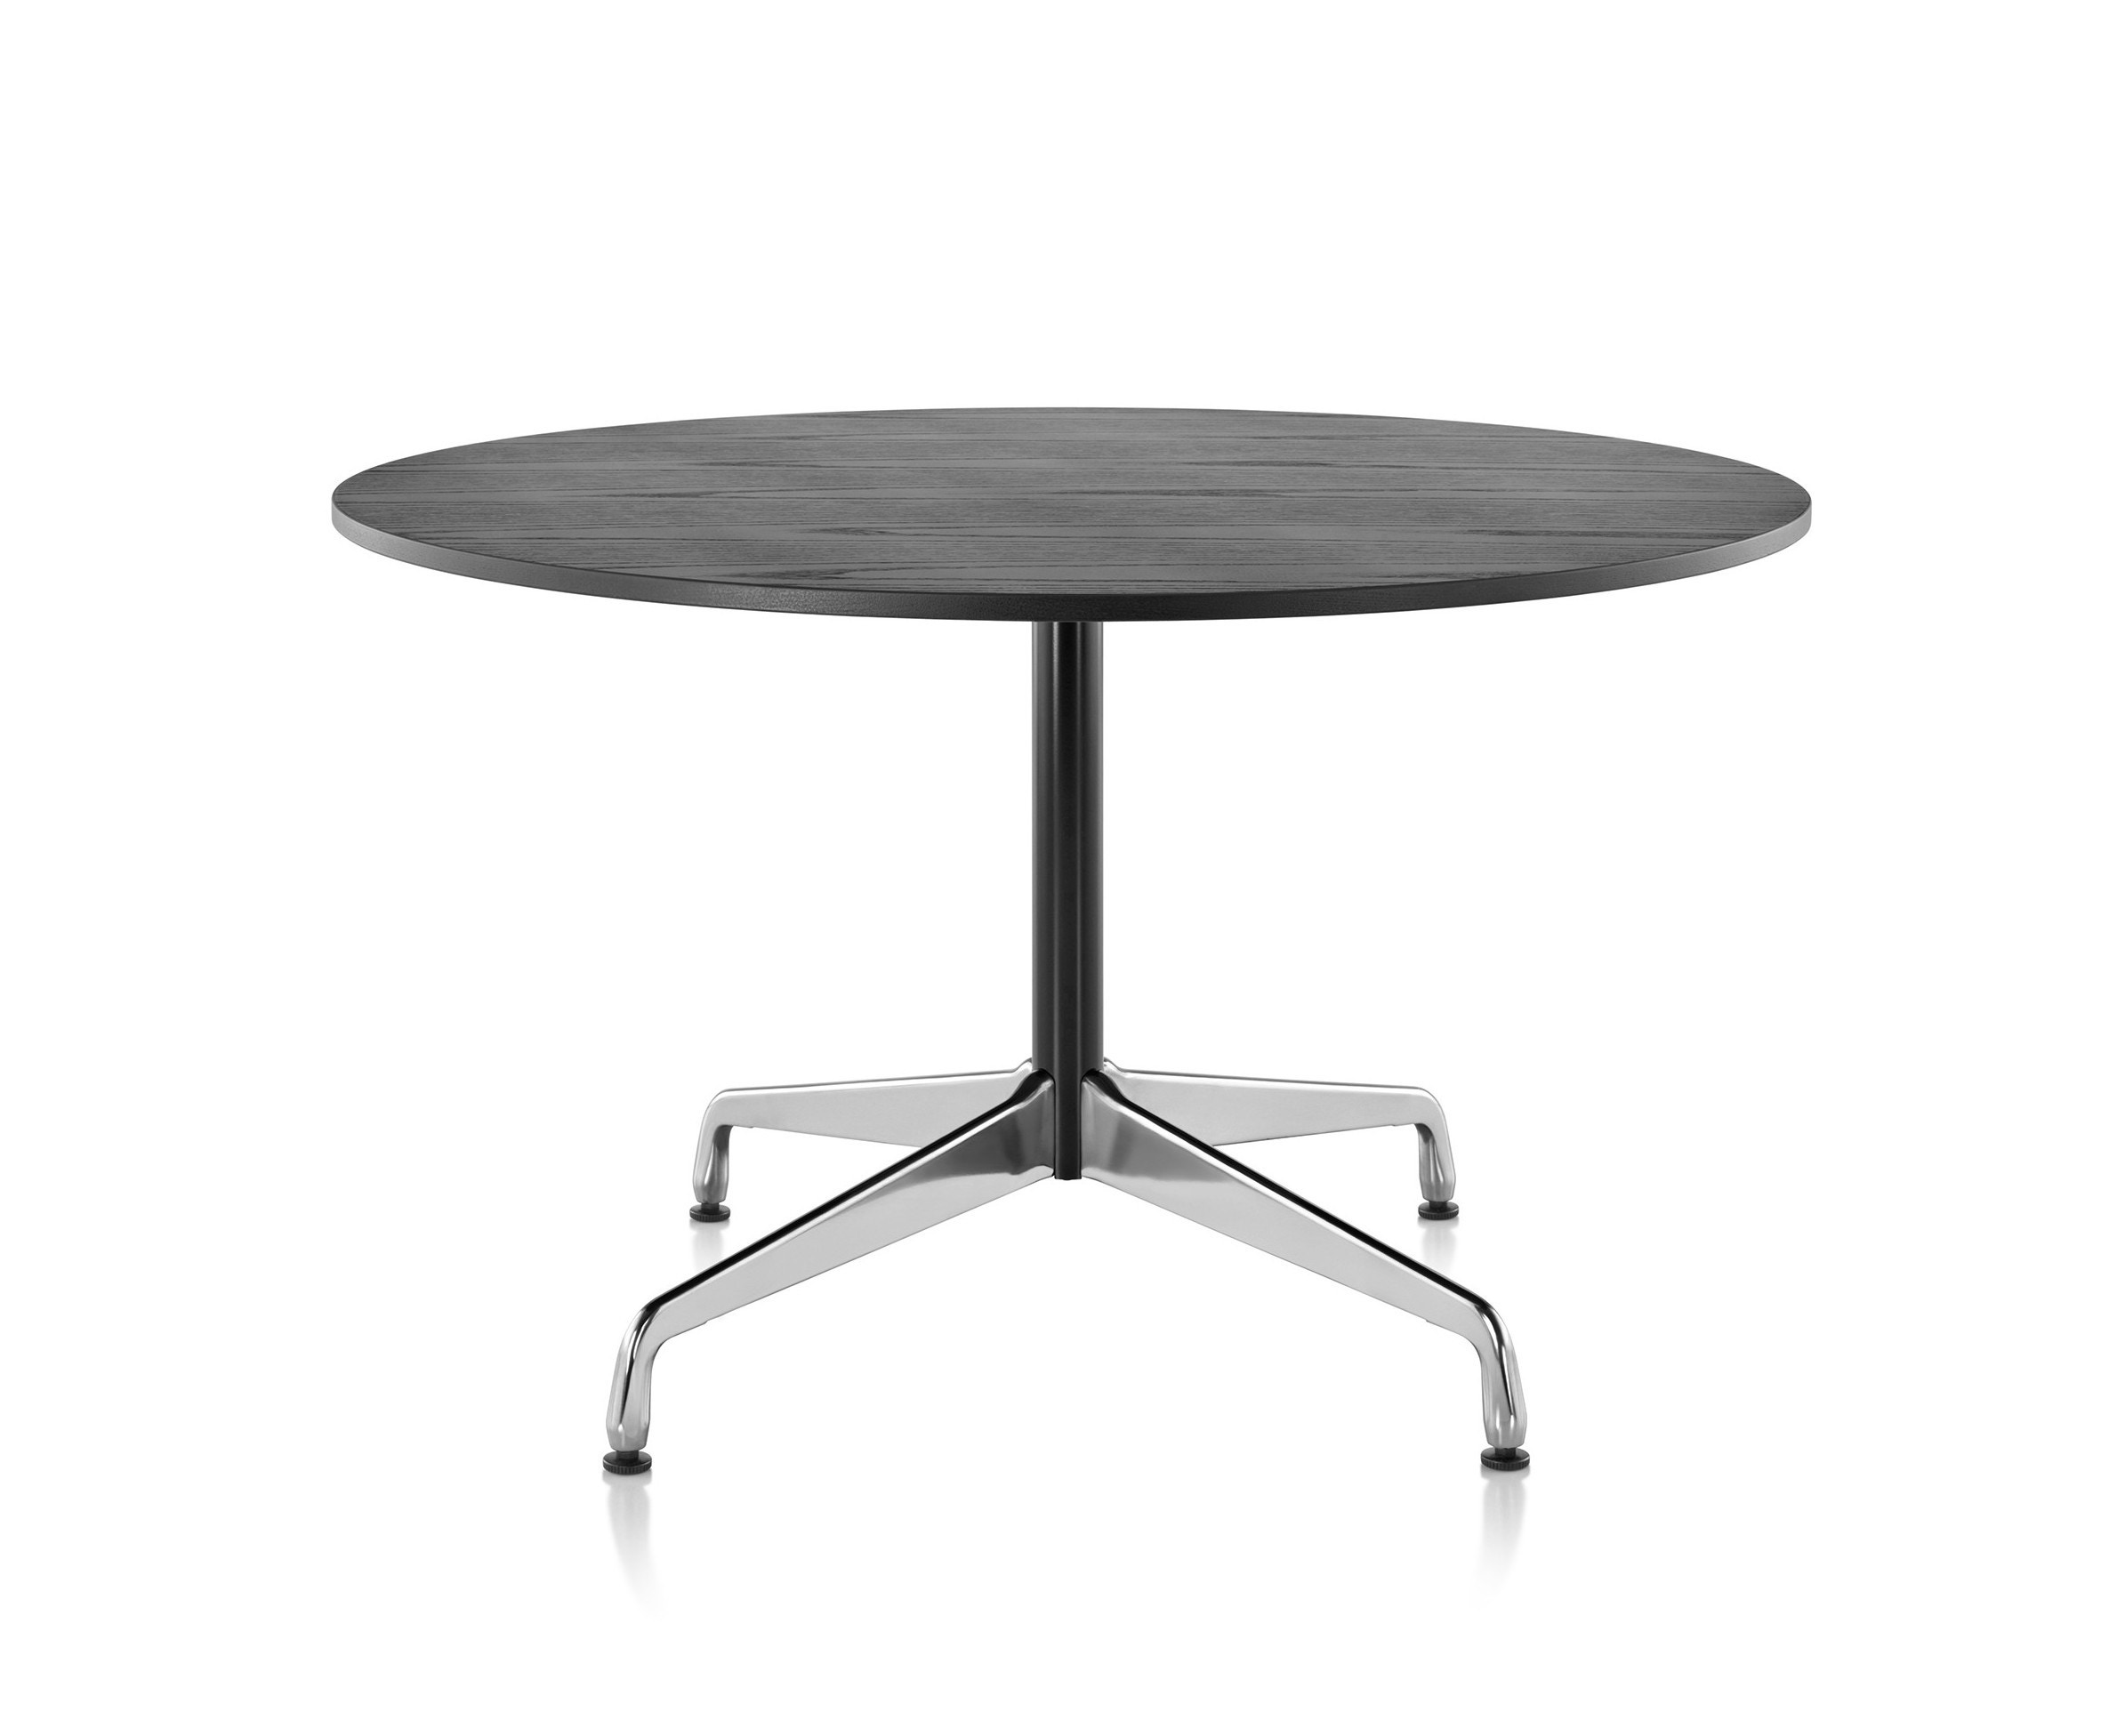 Herman Miller Eames Conference Table Round With Segmented Base